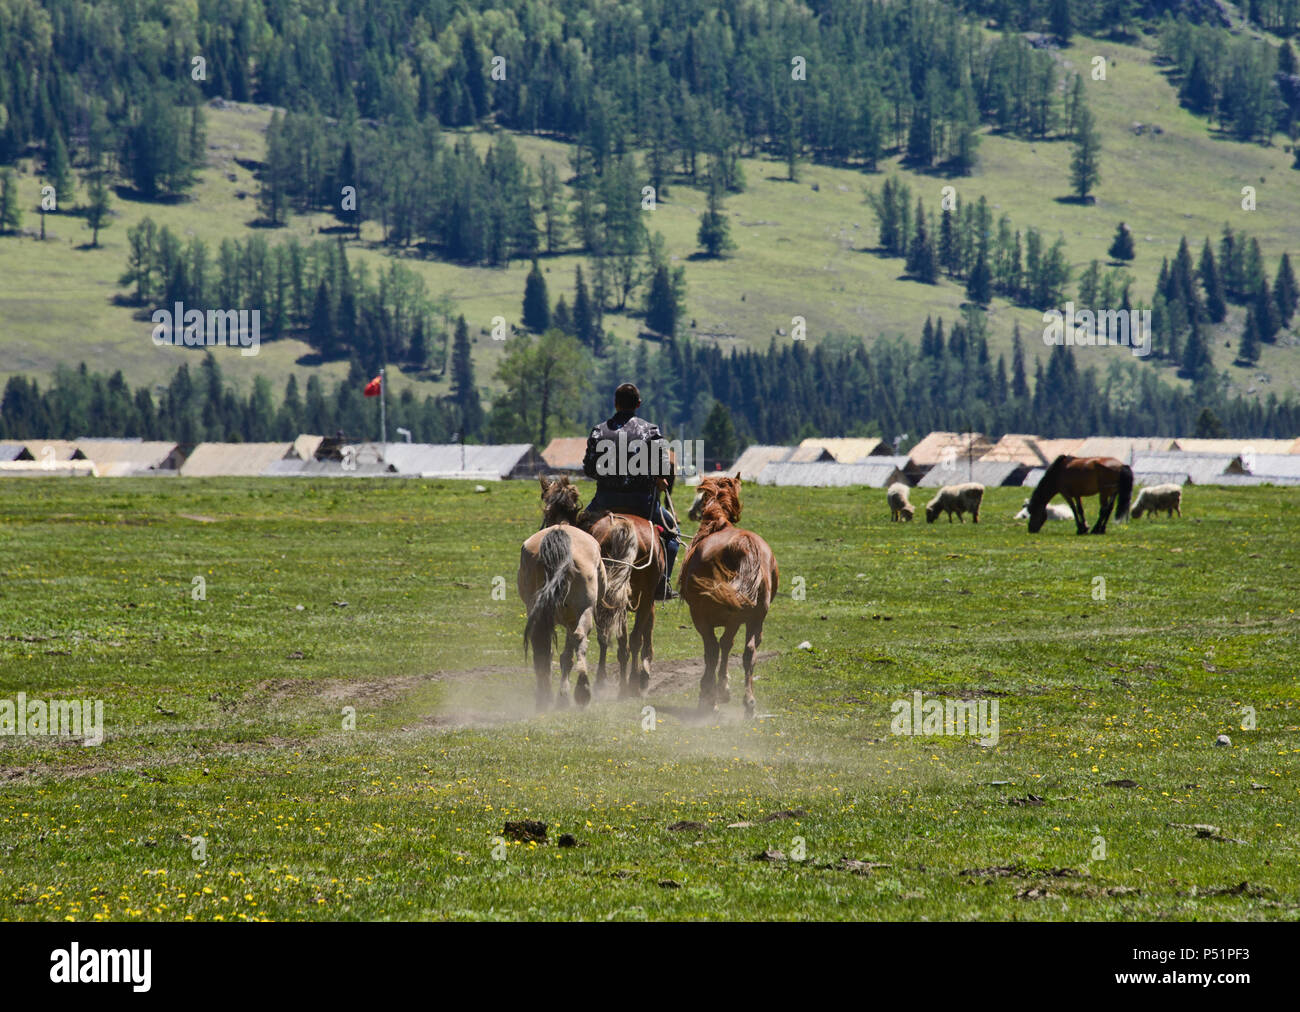 Kazakh horseman at Kanas Lake National Park, Xinjiang, China - Stock Image